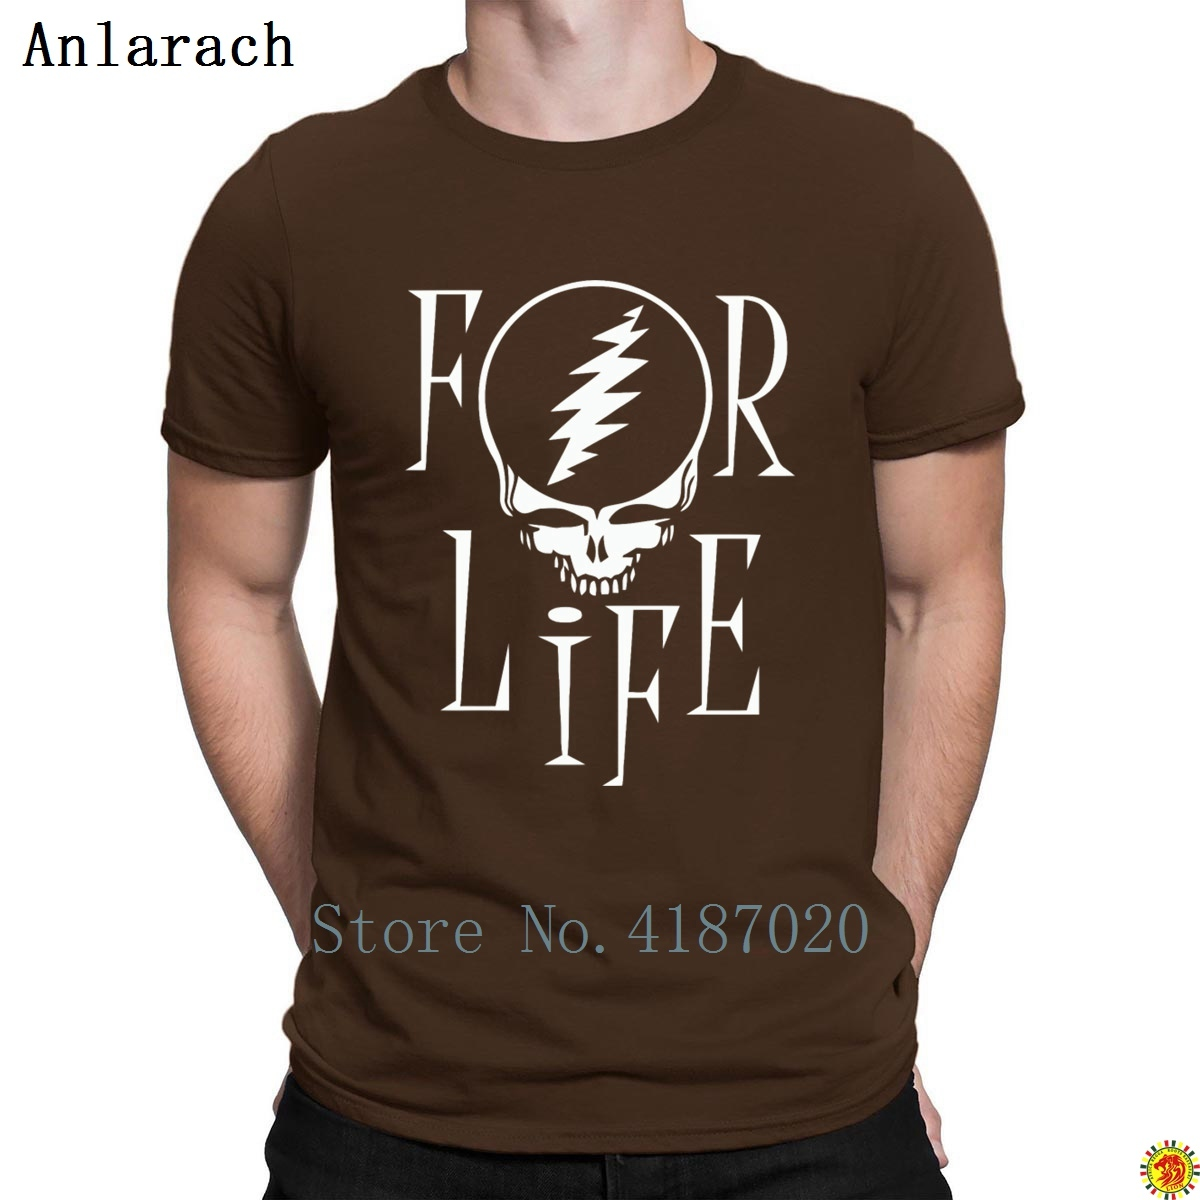 For Life Tshirt Hot Sale Vintage 2018 Funny Casual Men's Tshirt Big Sizes Print Awesome Anlarach Gents